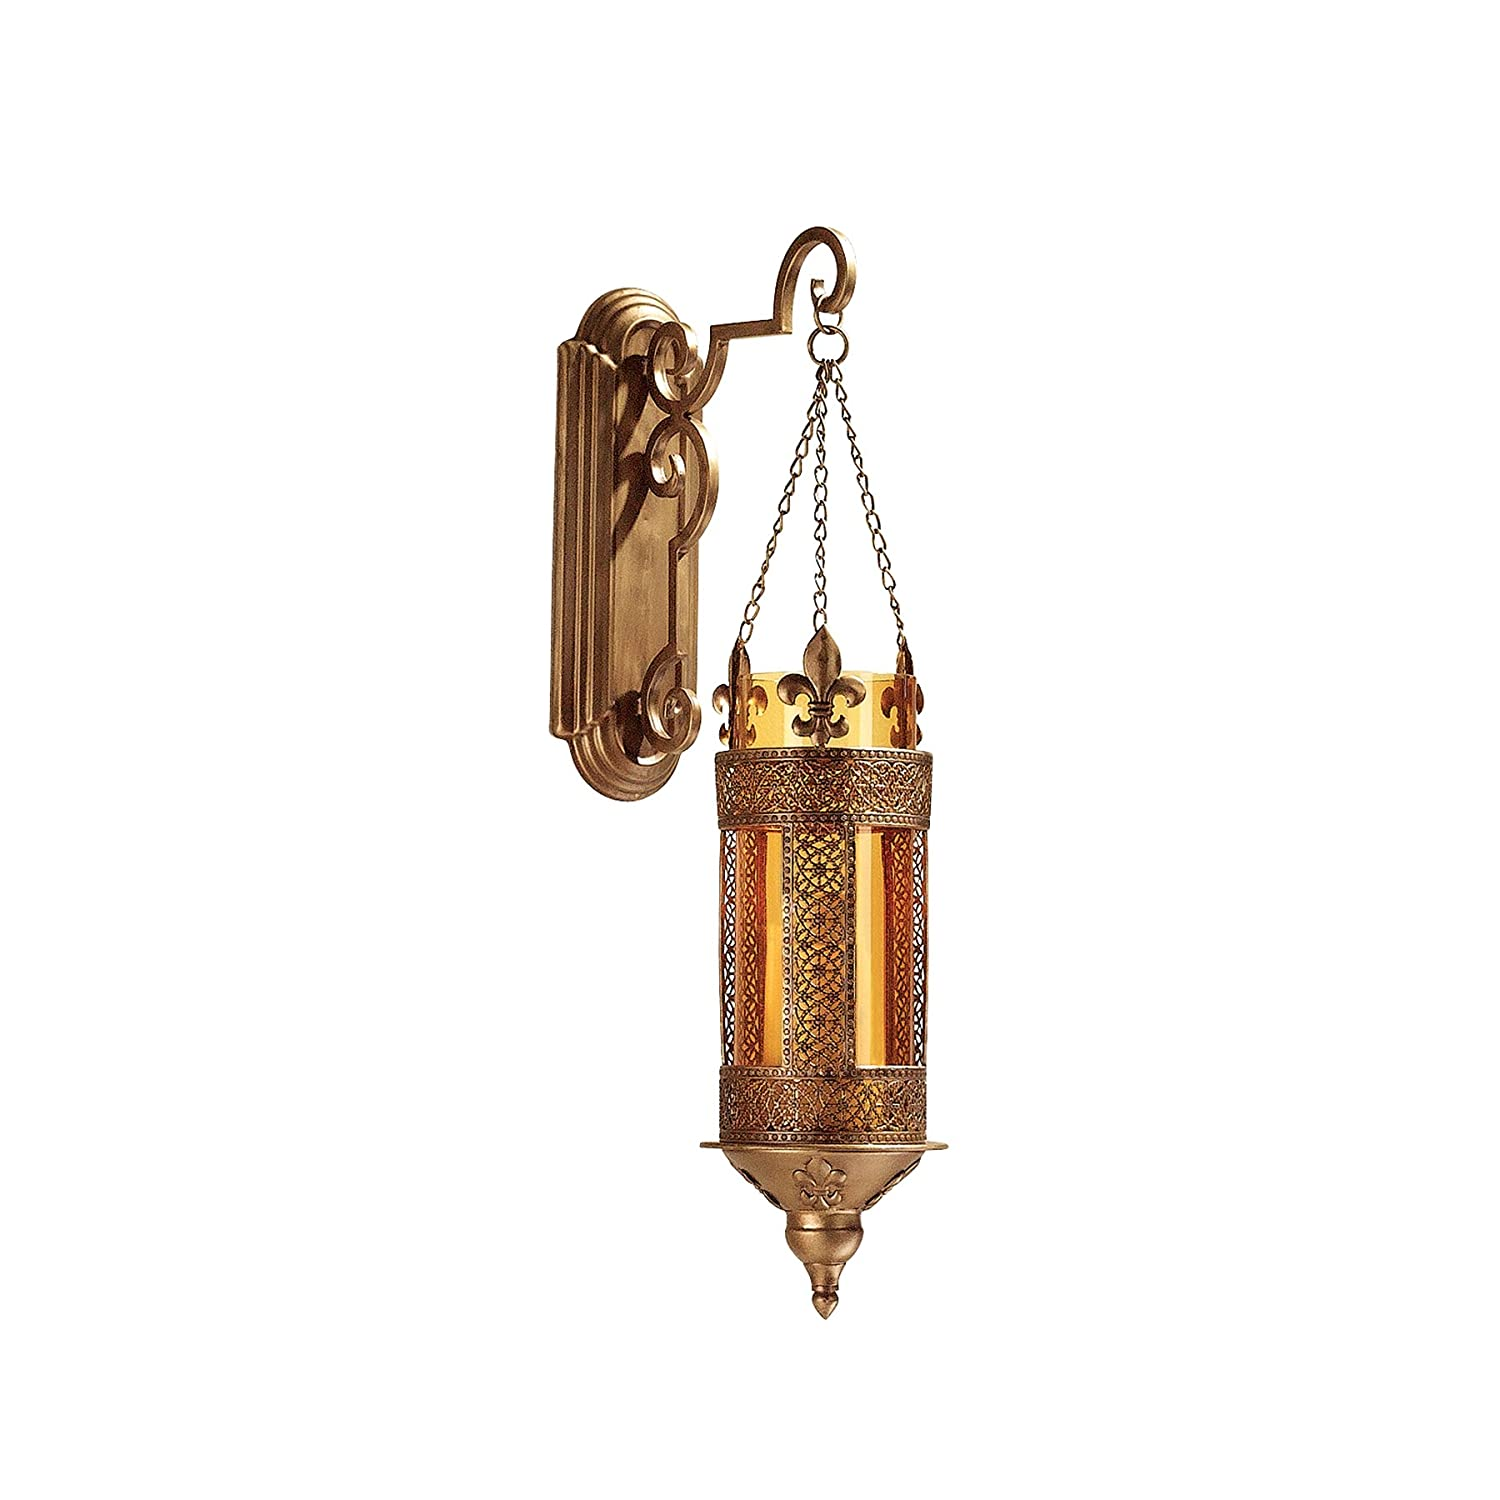 Design Toscano Kinnaird Castle Hanging Pendant Wall Sconce (Set of 2) MH982097